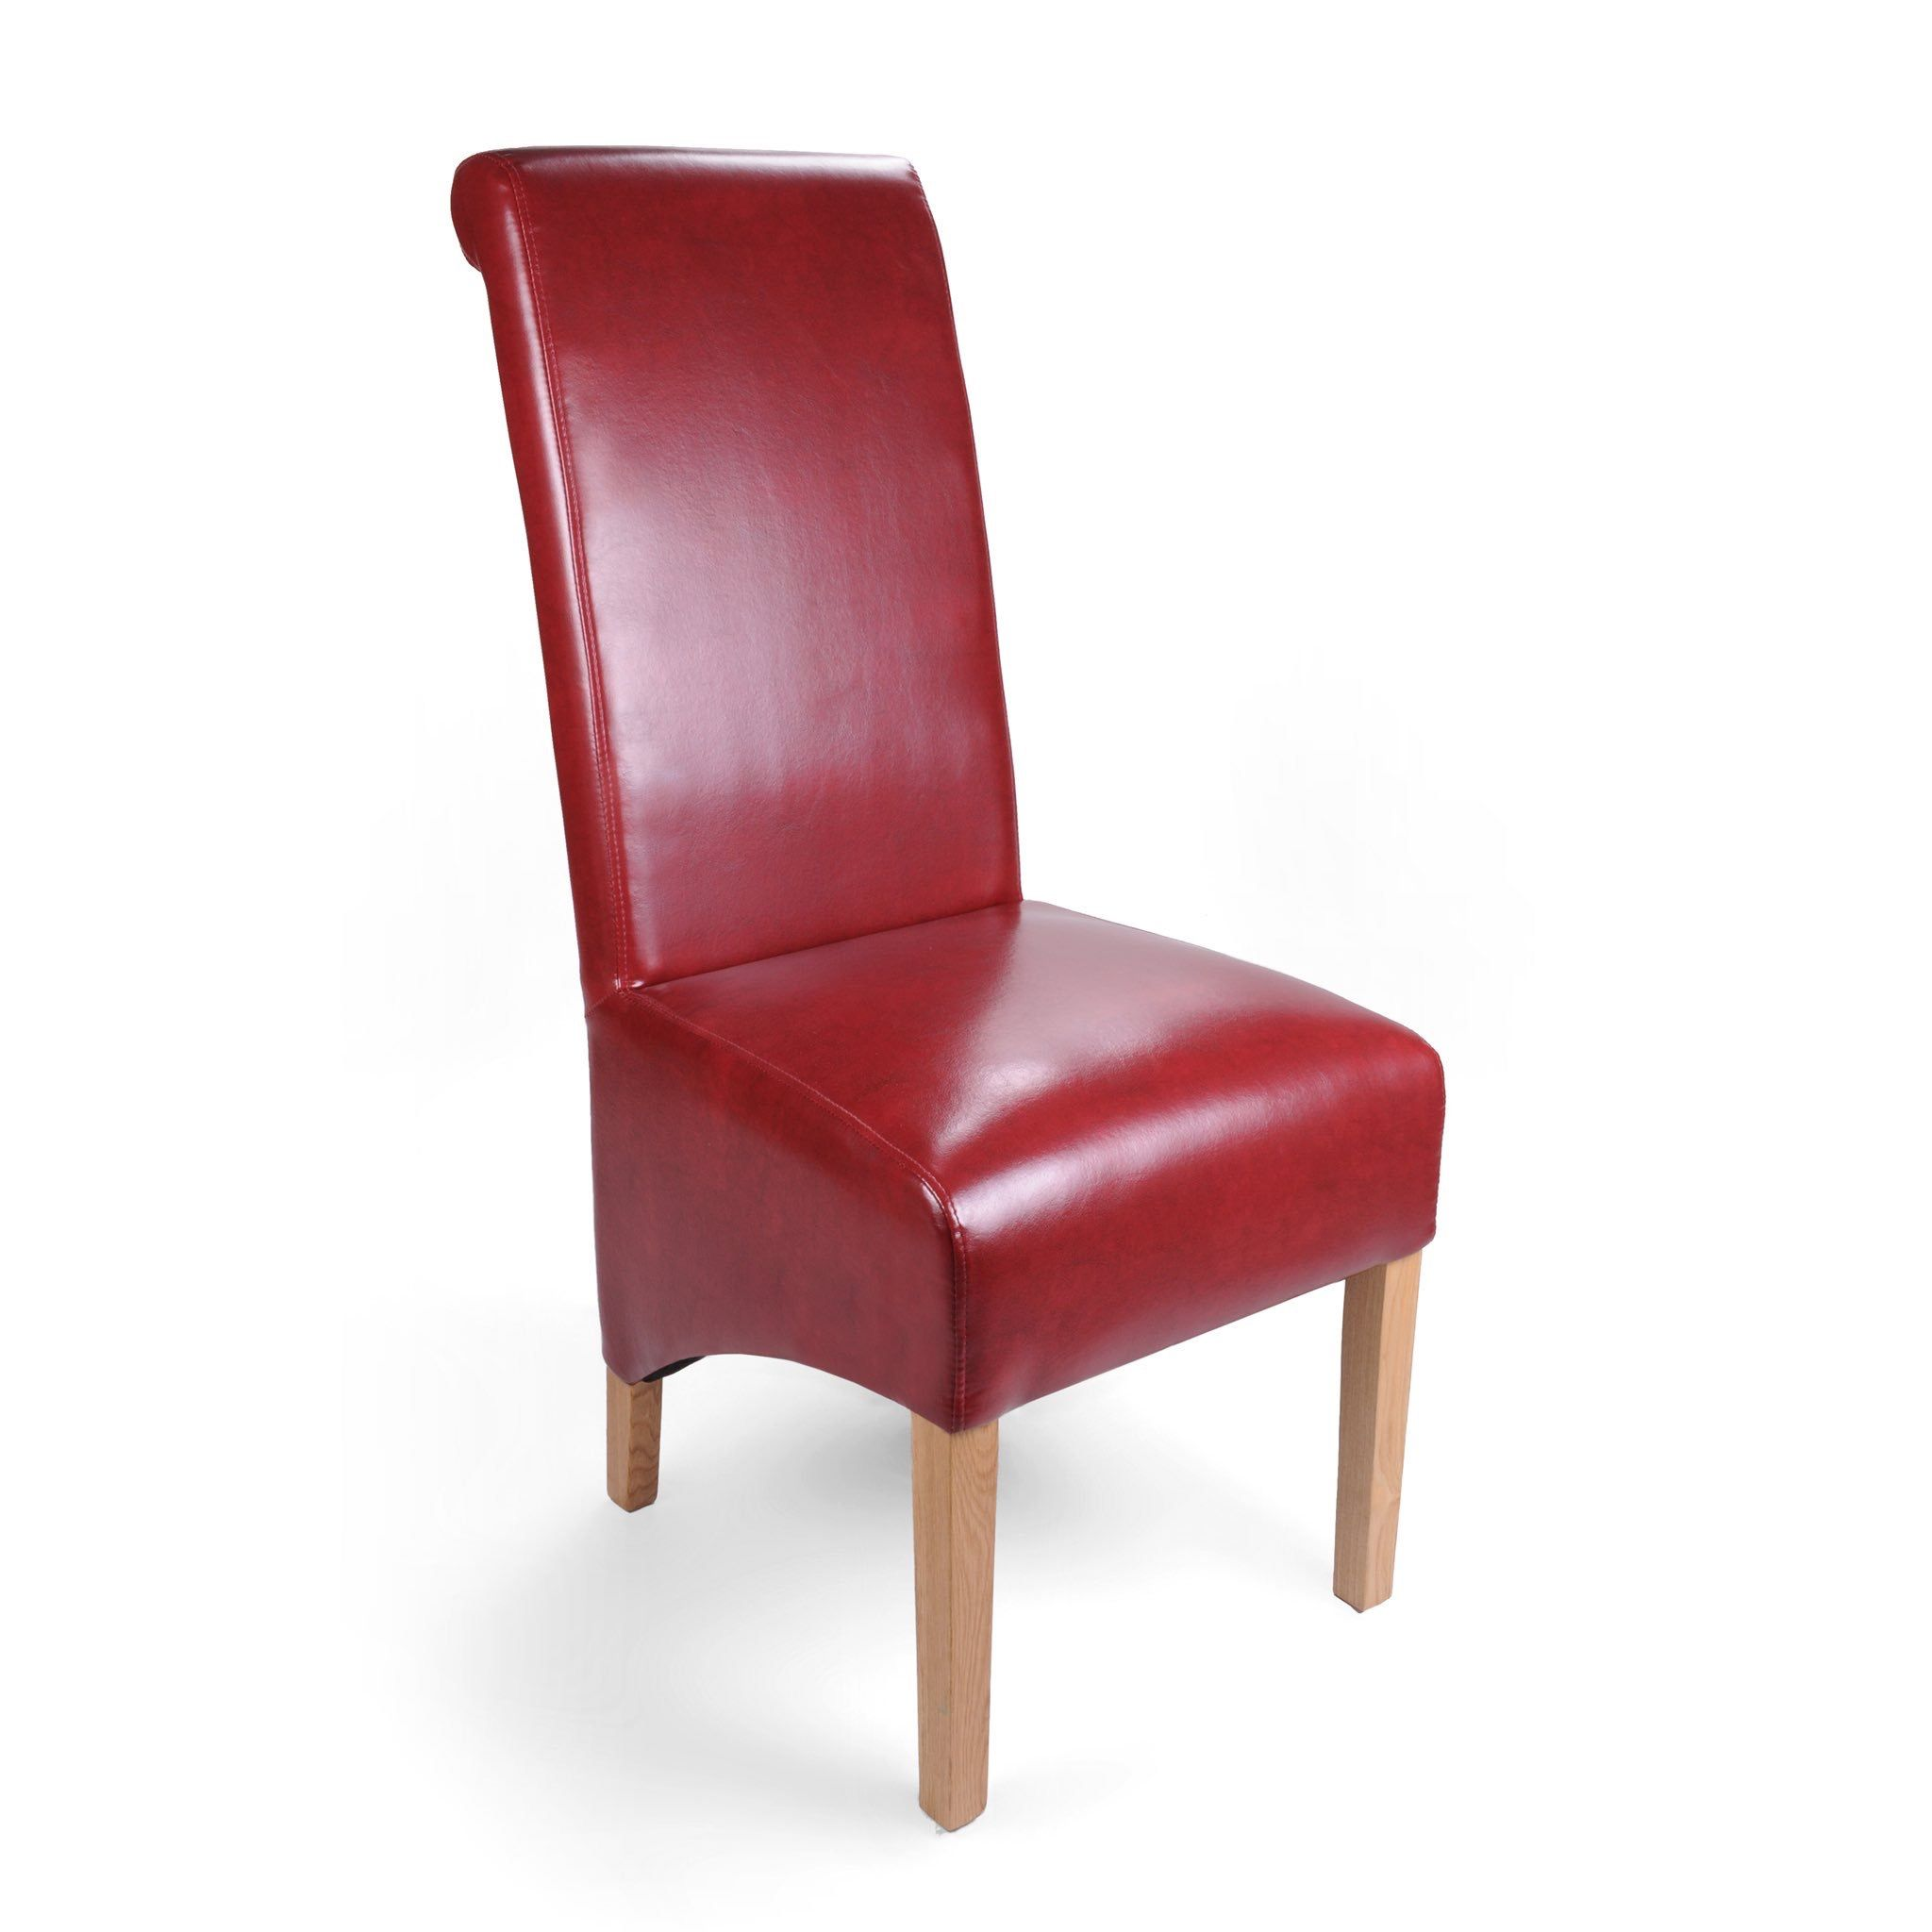 The Krista Burgundy Red Leather Chairs Are A Beautifully Styled And A Very High Quality Dining Chair The Bonded Lea Chair Dining Chairs Home Decor